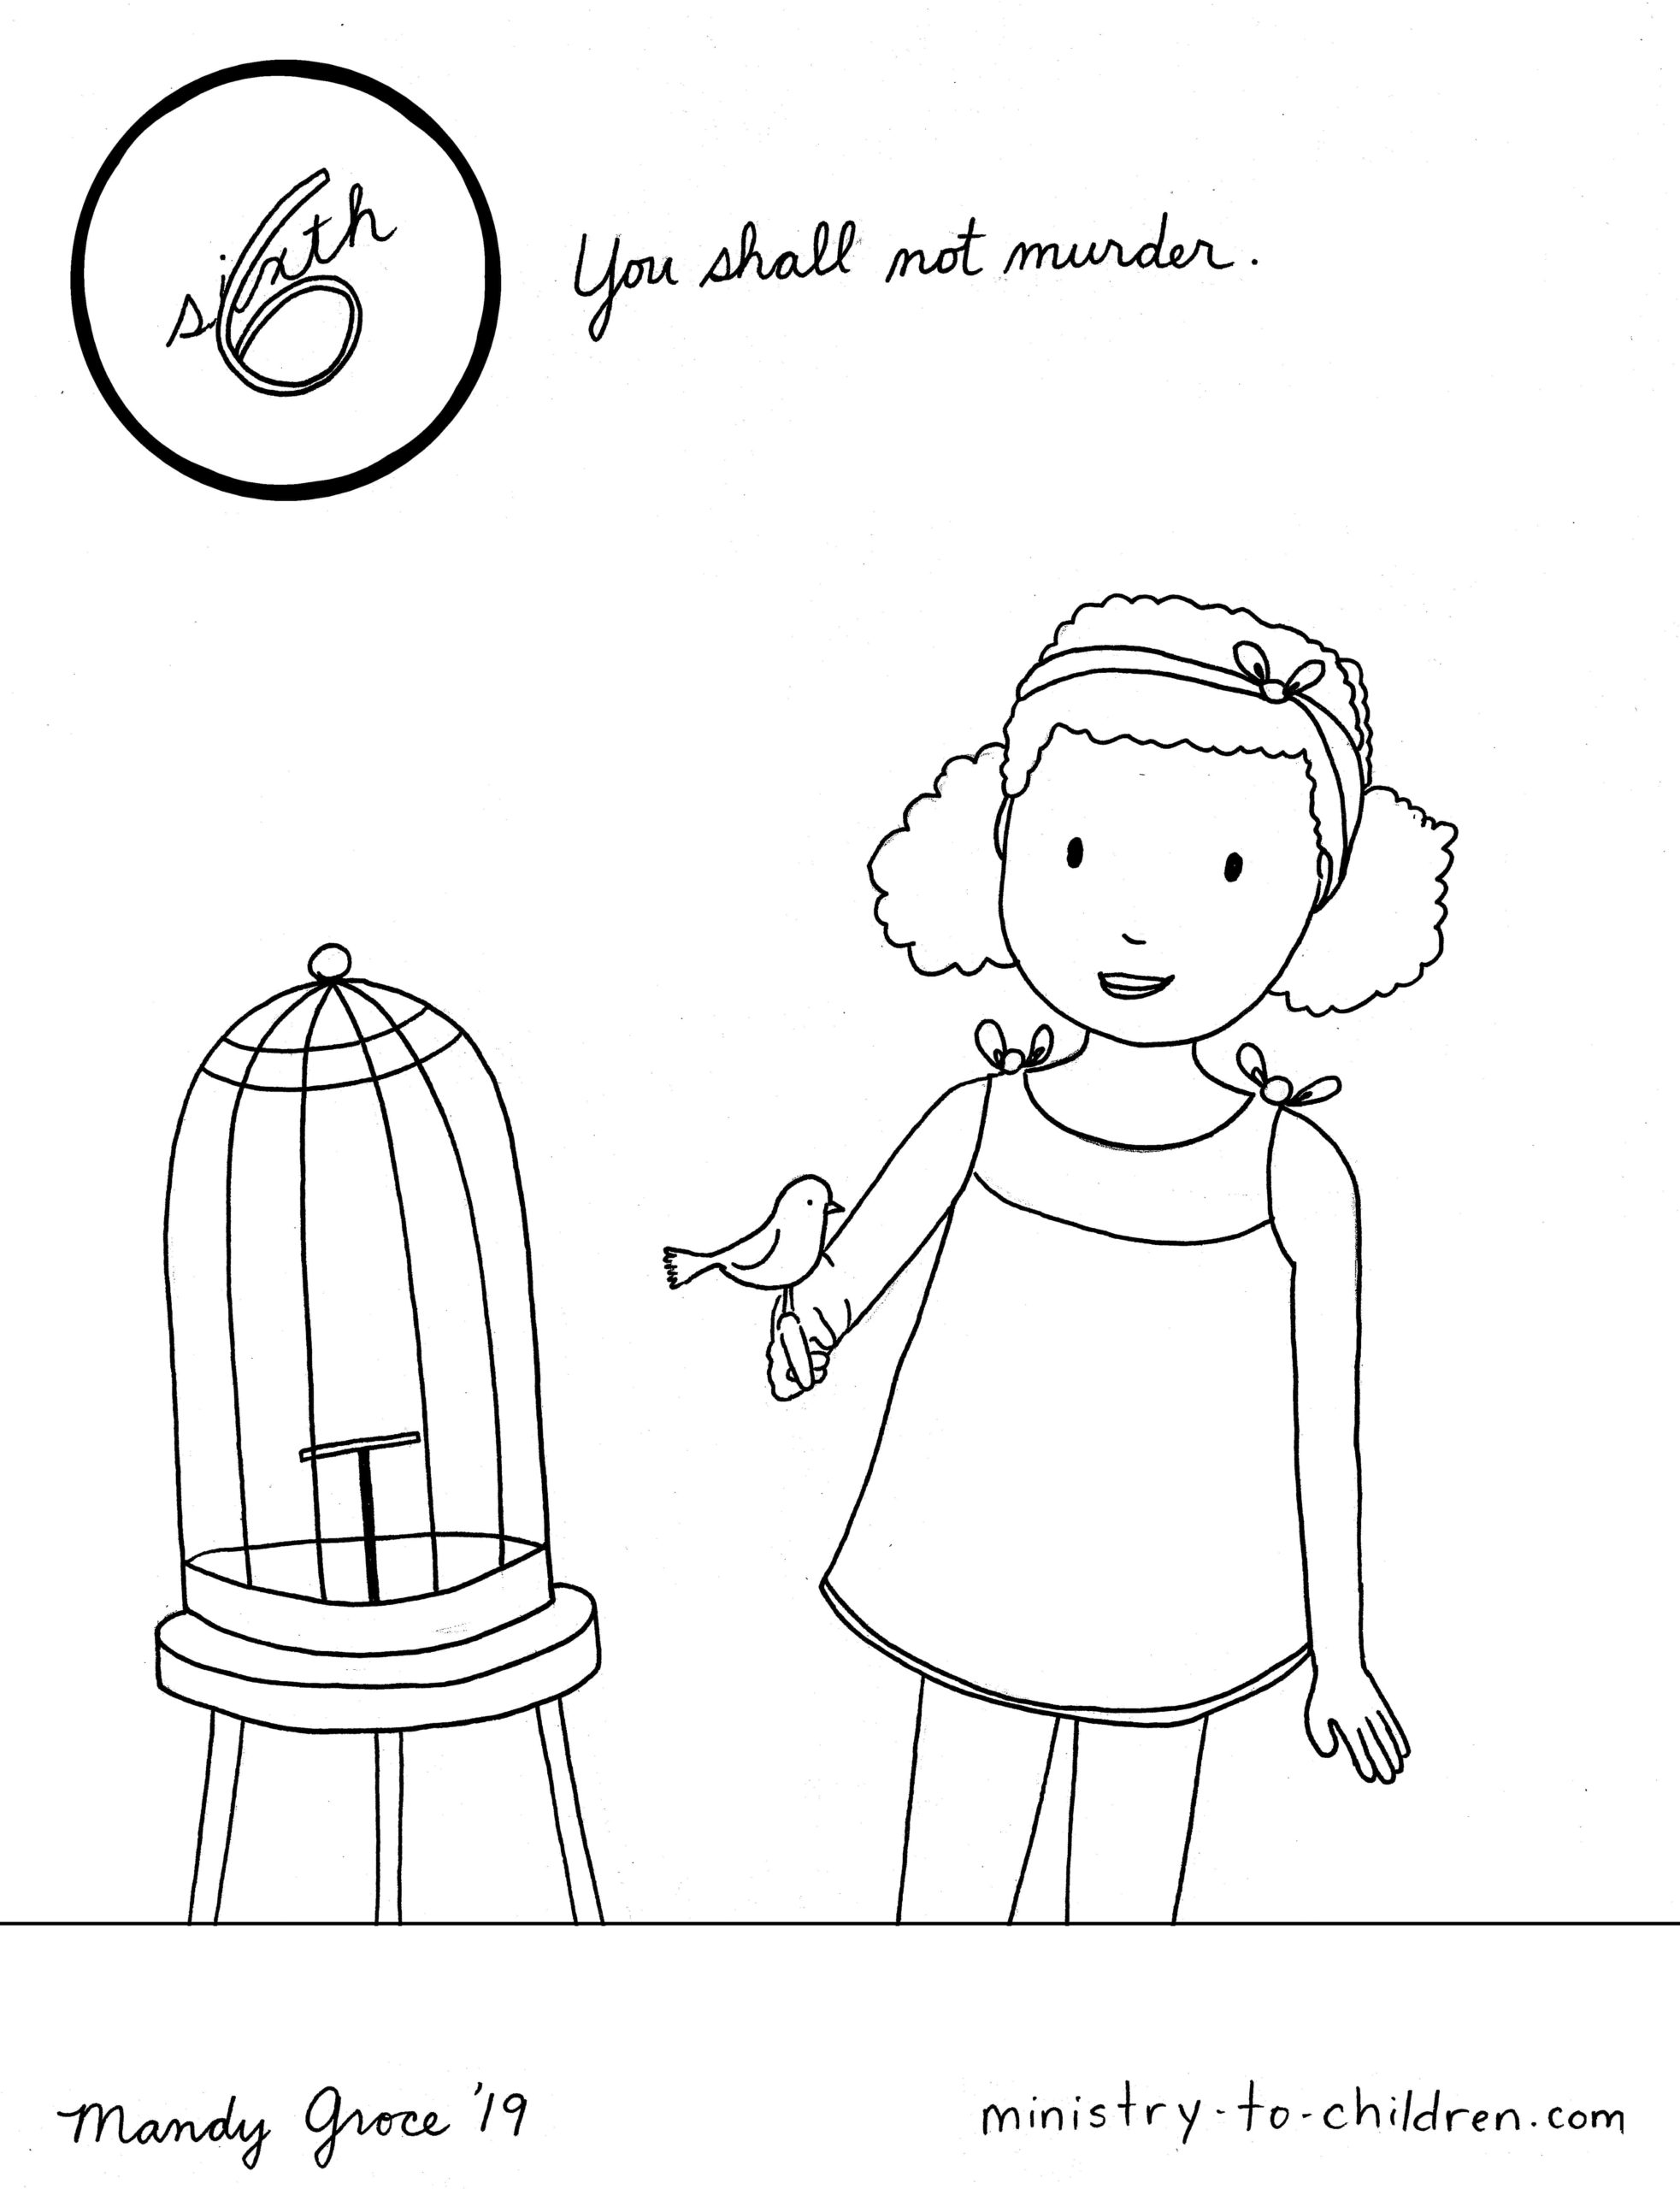 6th Commandment Coloring Page: You Shall Not Murder ...